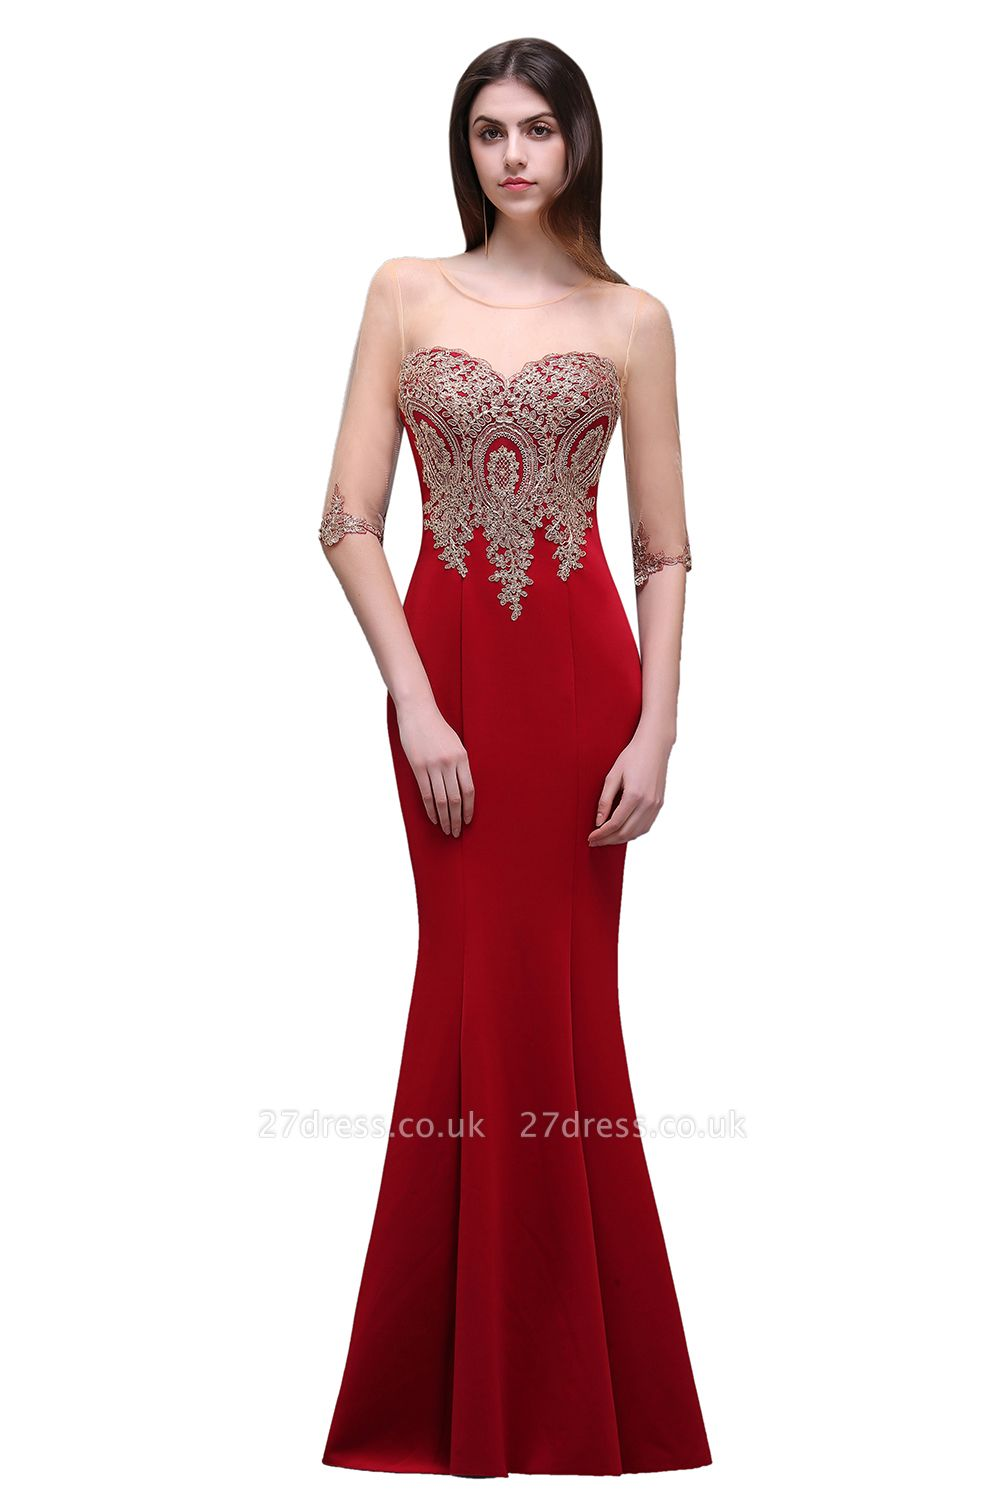 BELLA | Sheath Round Neck Floor-Length Burgundy Prom Dresses With Applique